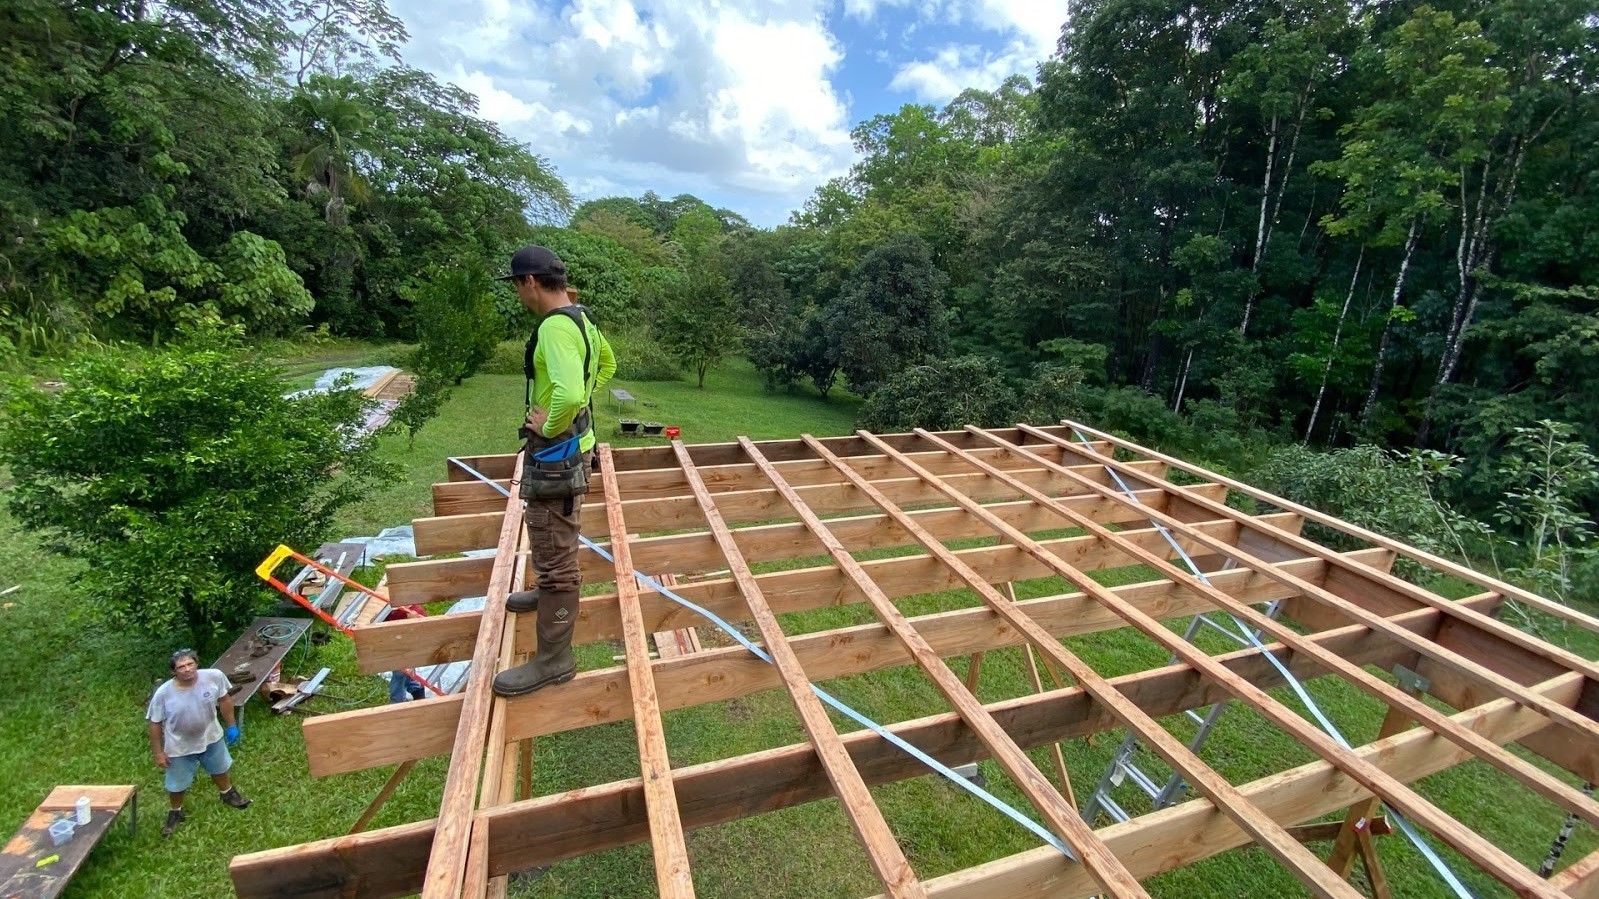 Jake stands on top of the framing of the new roof.